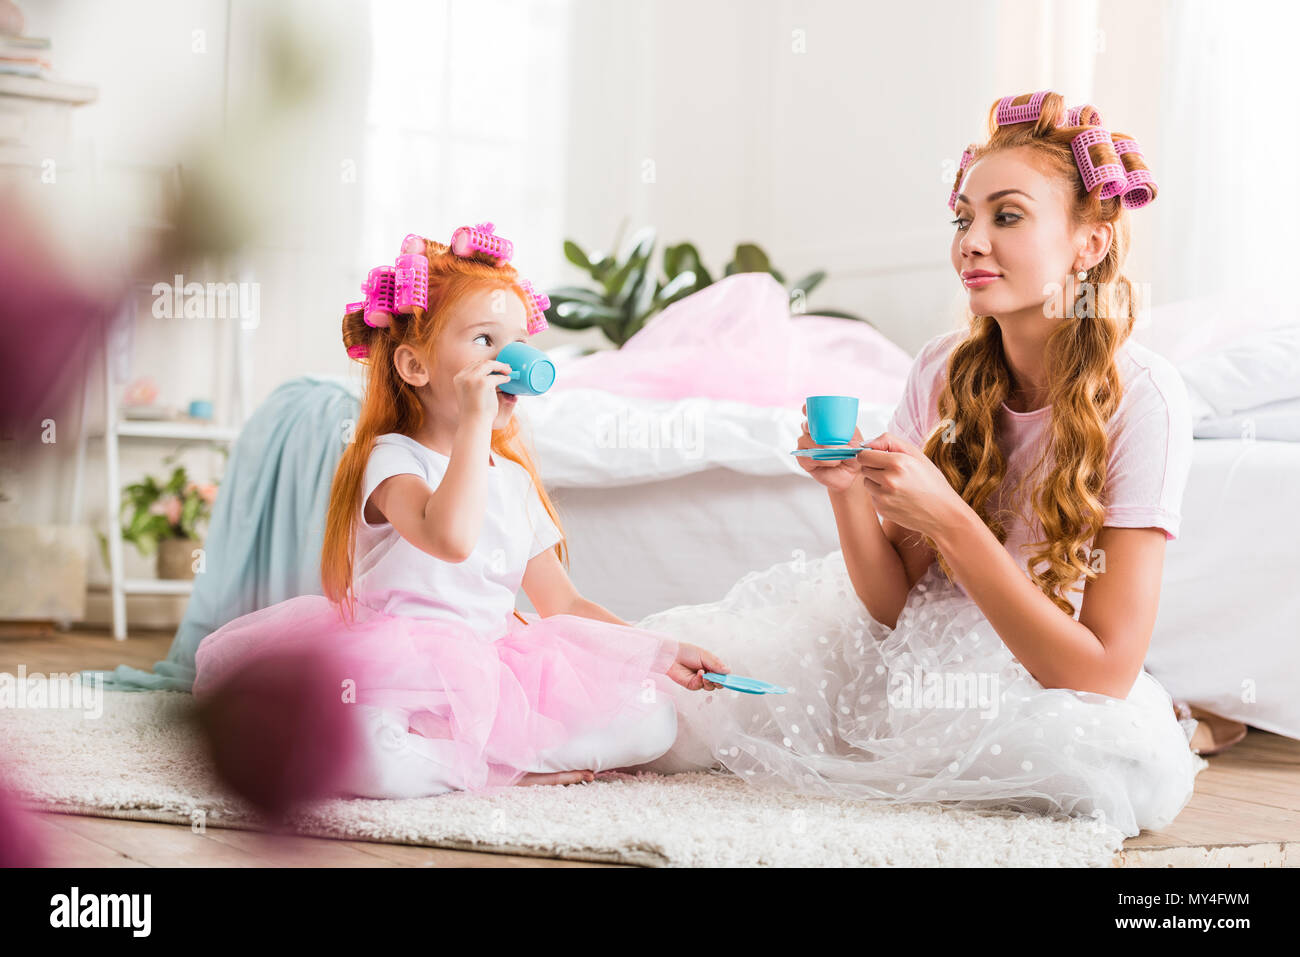 900eb554fc young mother and cute little daughter with curlers in tutu tulle skirts  having tea party together